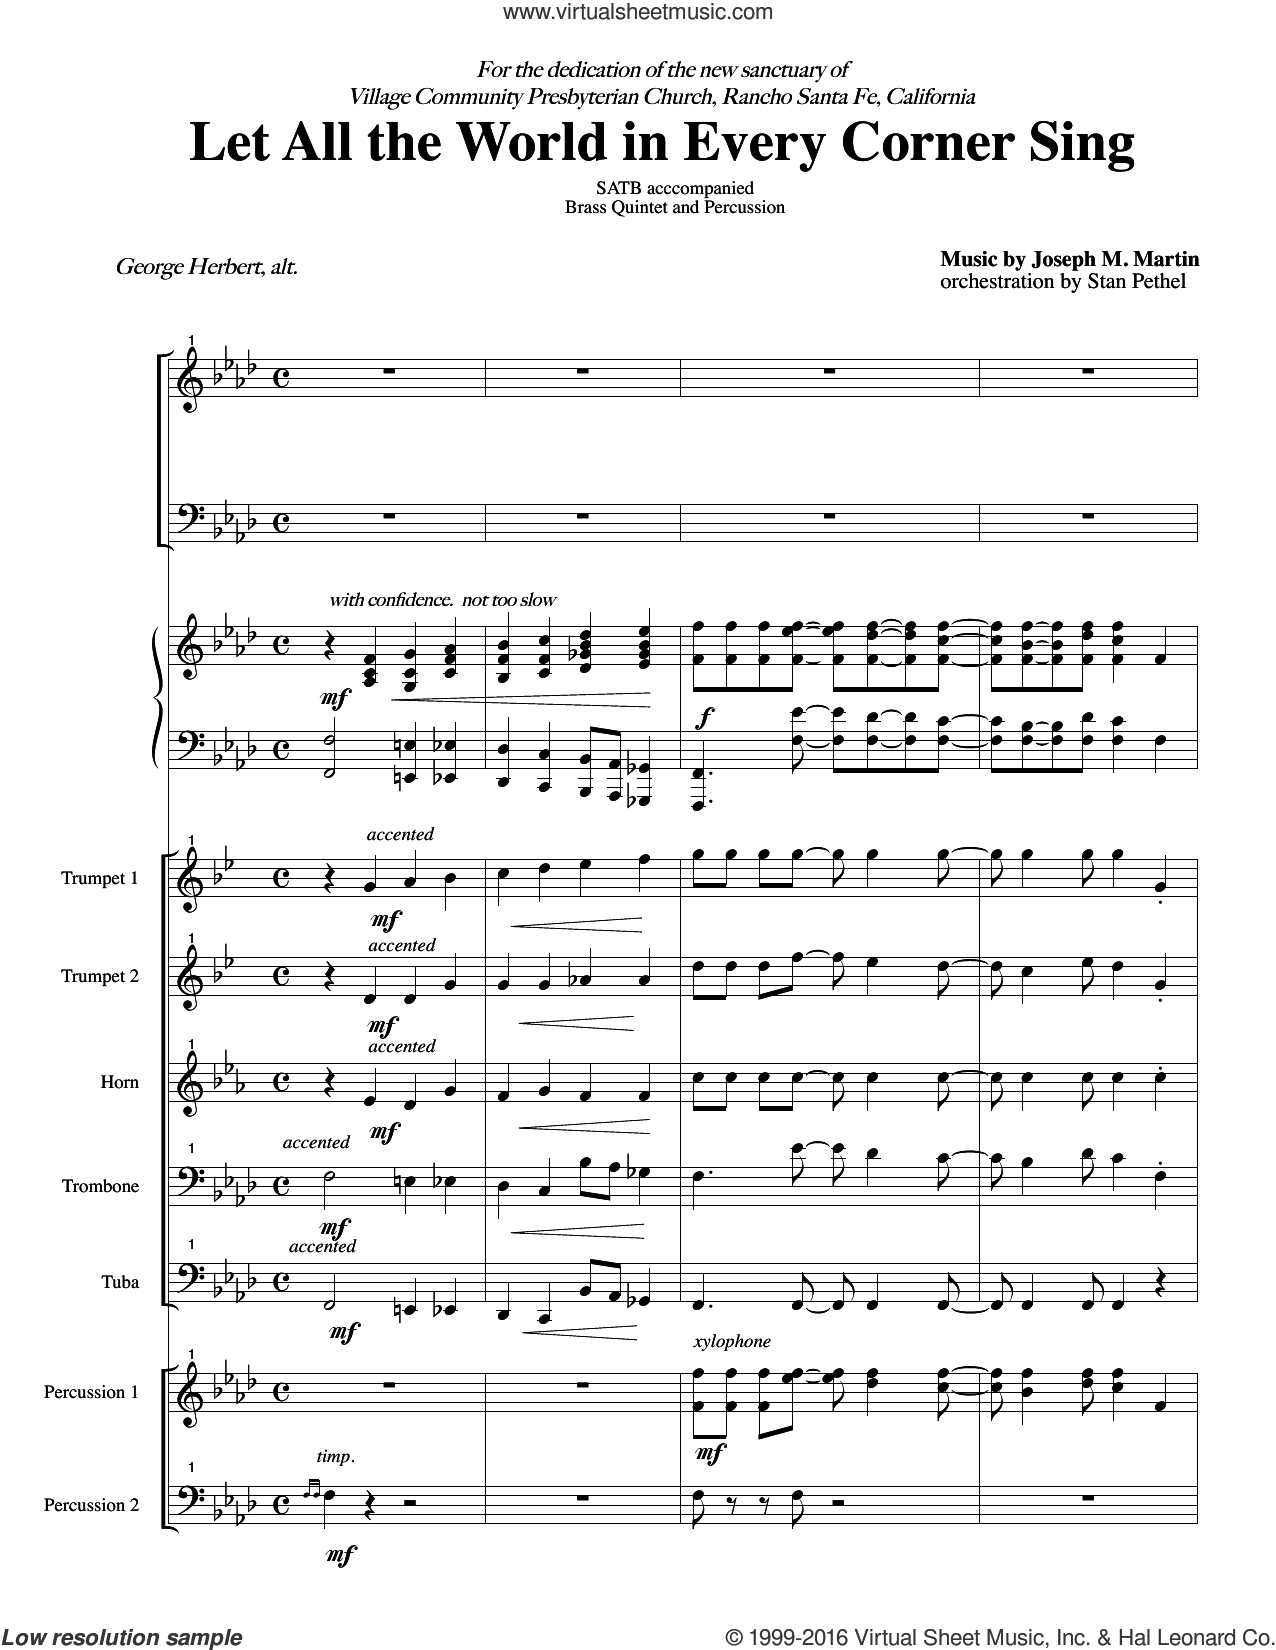 Let All the World in Every Corner Sing sheet music for orchestra/band (score) by Joseph M. Martin, intermediate